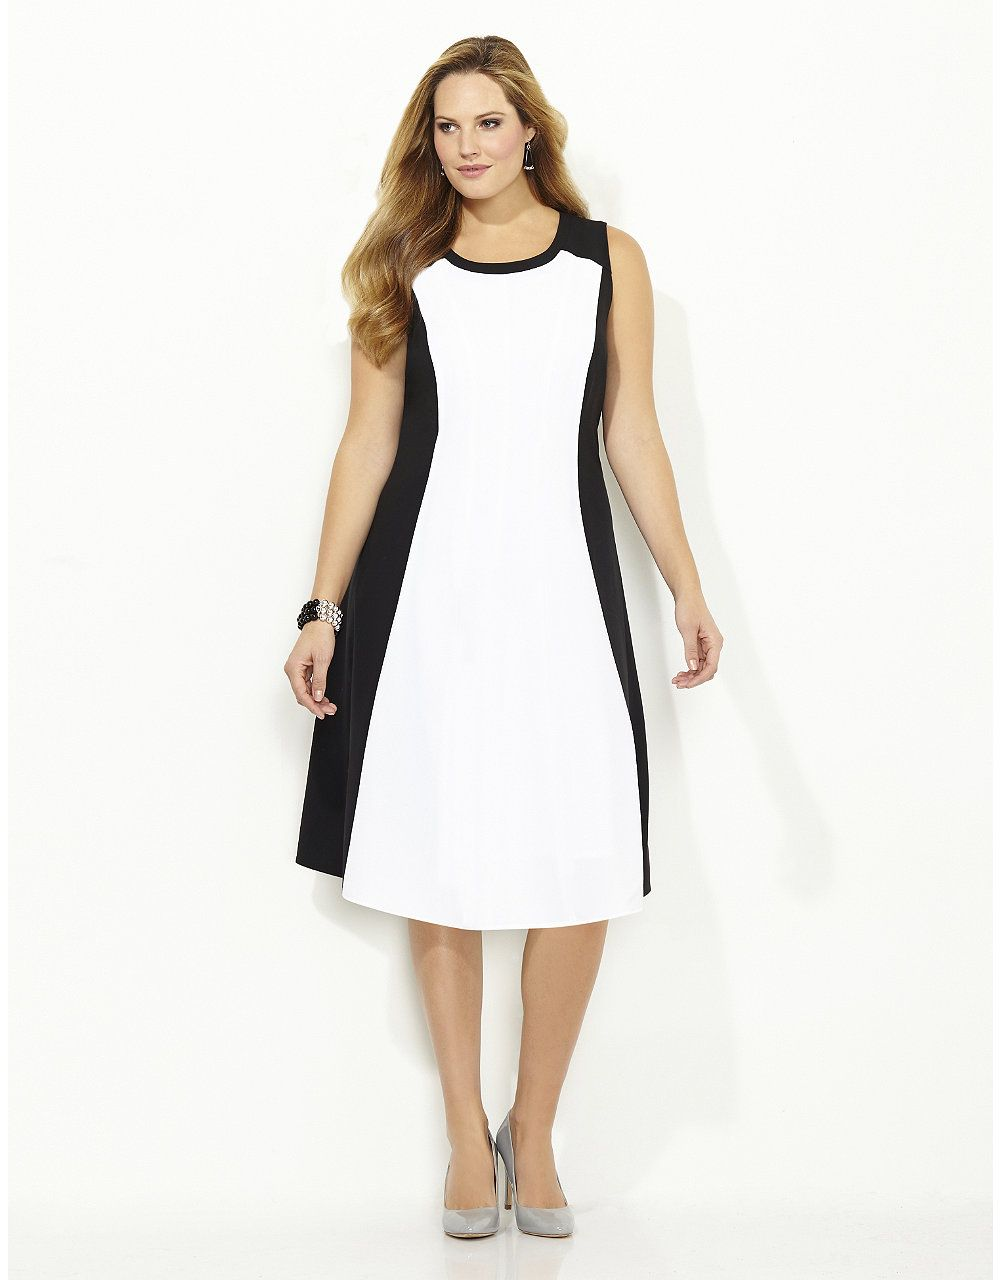 Hourglass Colorblock Dress   Catherines   Clothes I like ...